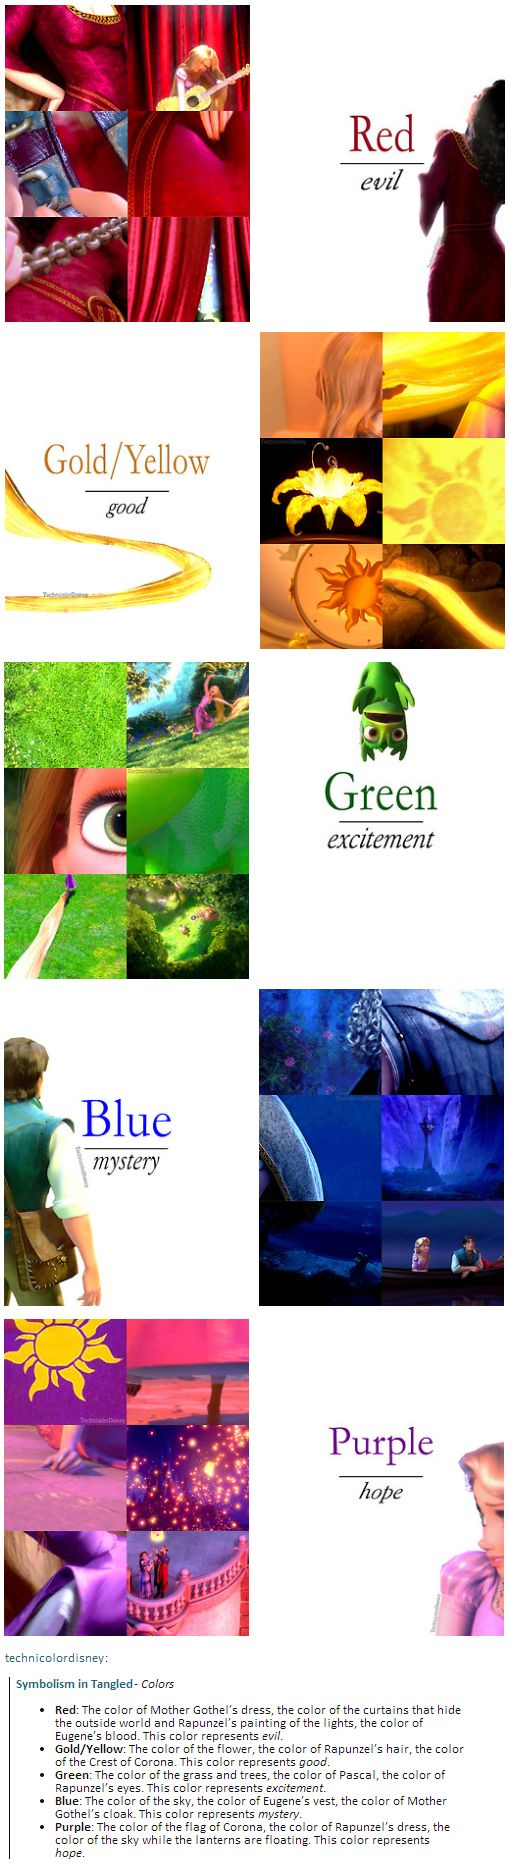 Color symbolism in Tangled// This is so cool! It makes total sense! Disney never ceases to amaze me!